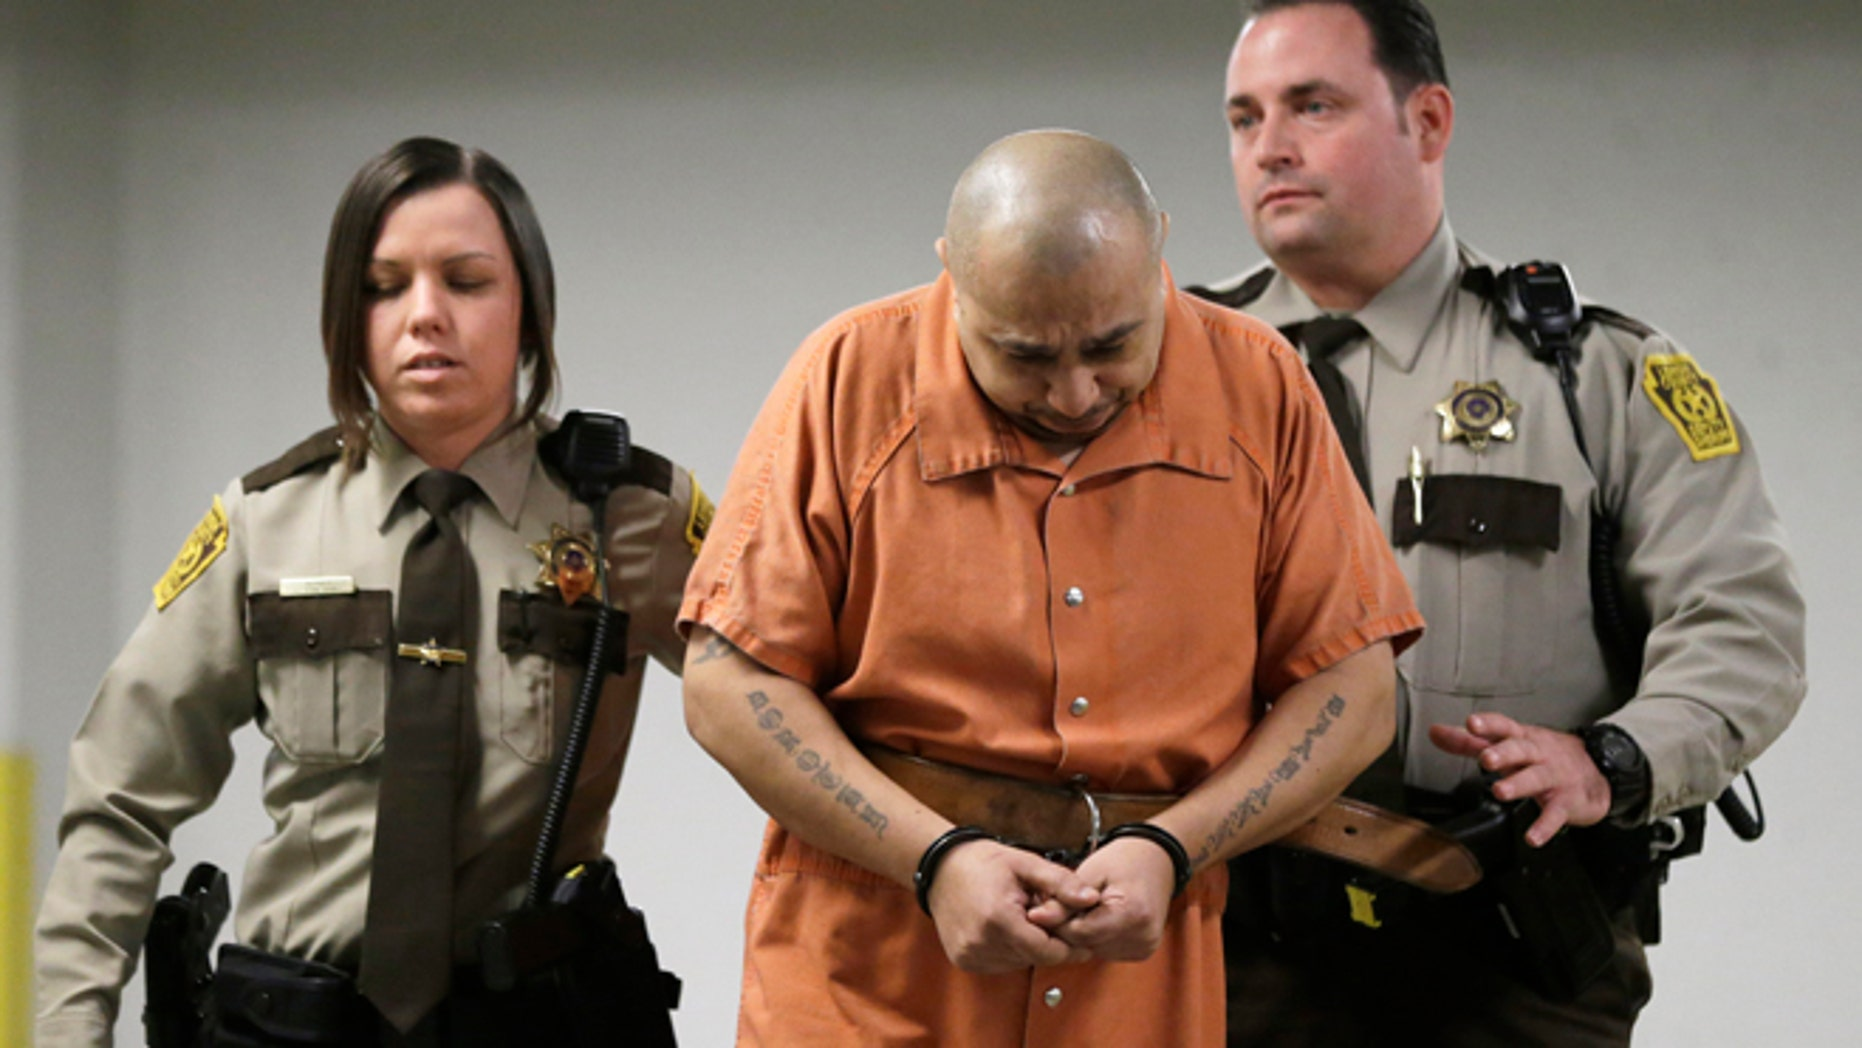 March 7, 2013: Julio Acevedo is escorted to a hearing at the Lehigh County Courthouse in Allentown, Pa. Acevedo was arrested in Pennsylvania on Wednesday after a friend arranged his surrender and was ordered held without bail. He is a suspect in a hit-and-run crash that killed a pregnant woman and her husband on their way to a hospital in New York. Their premature baby, delivered after the crash, later died.